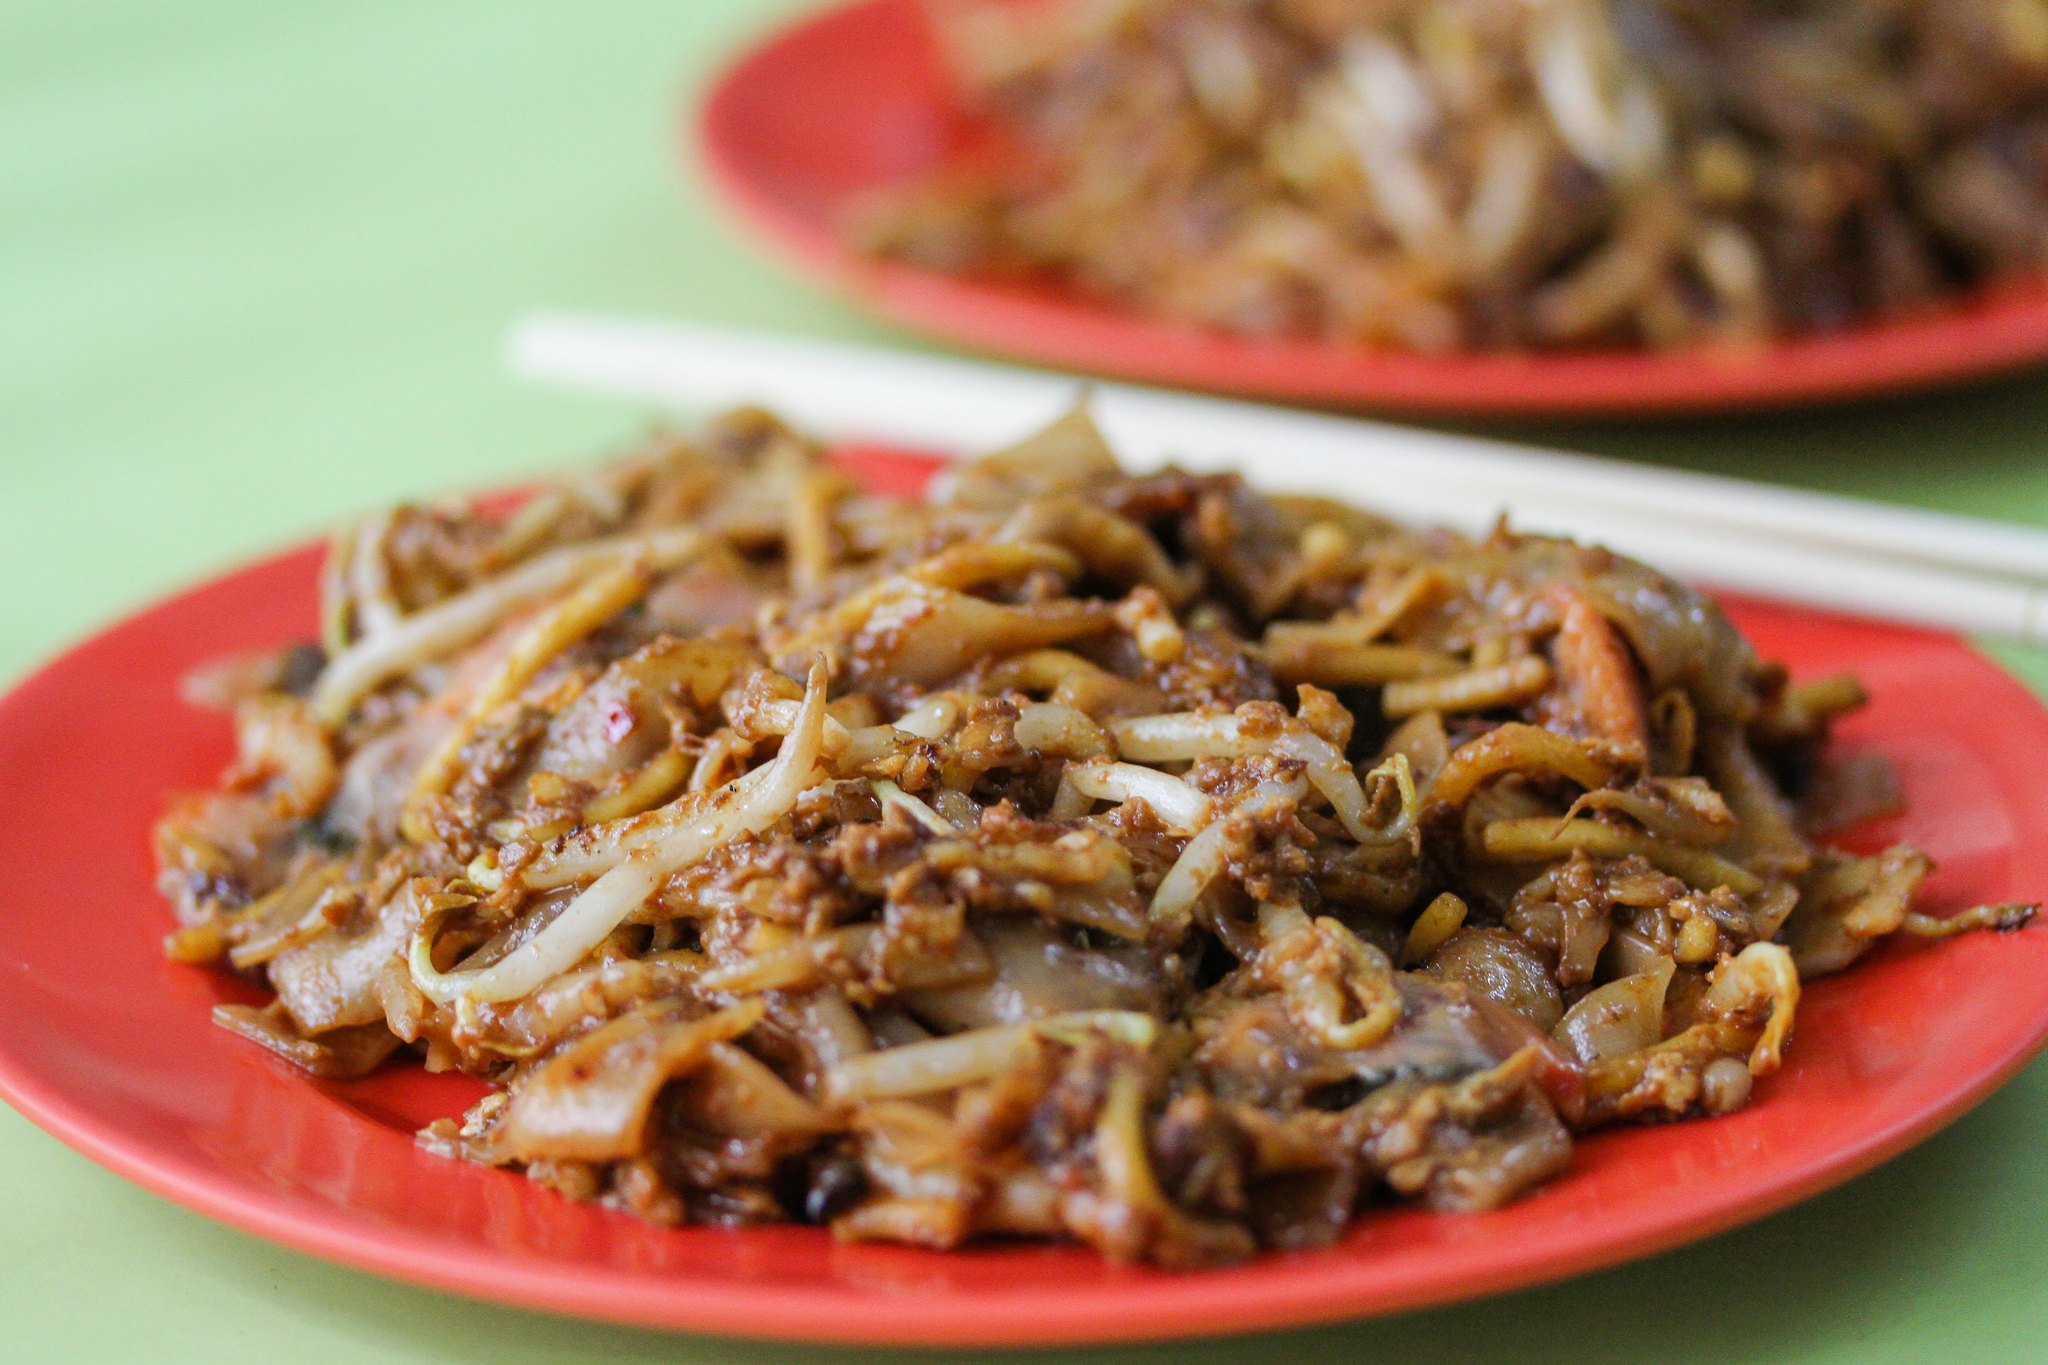 Outram公园油炸Kway Teow Mee img_-1